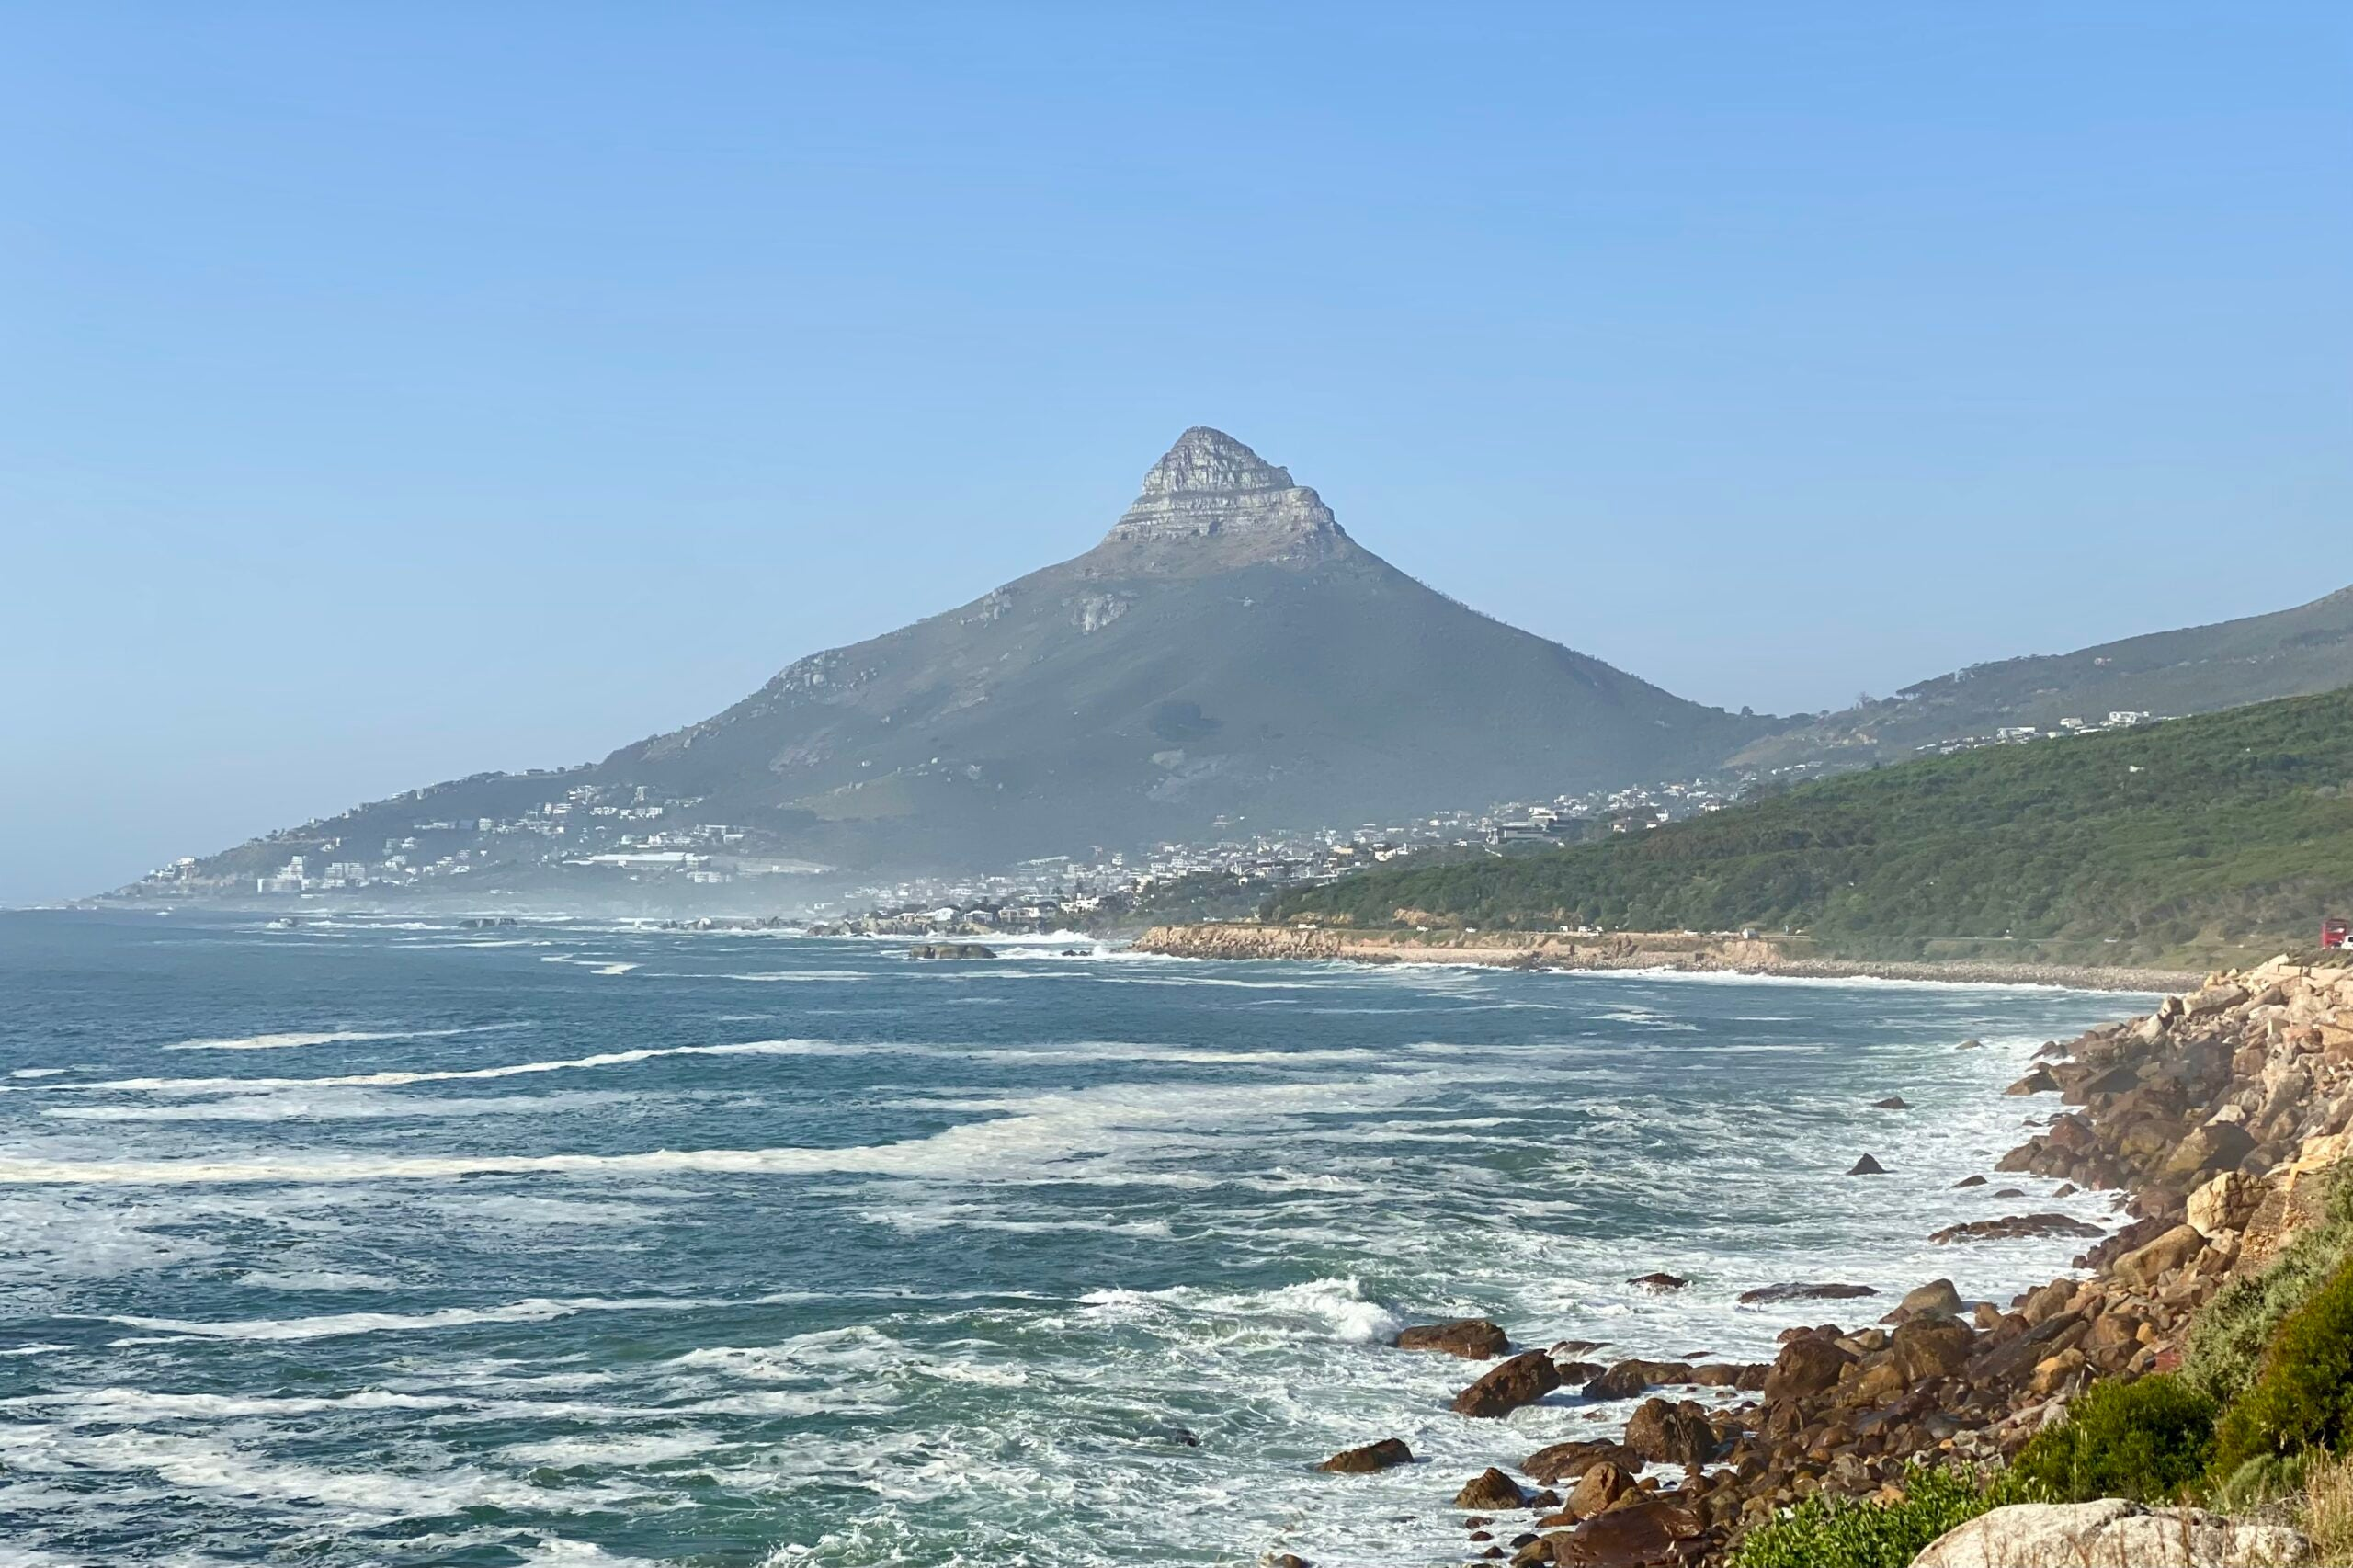 United won't be flying to Cape Town as early as expected this year - The Points Guy